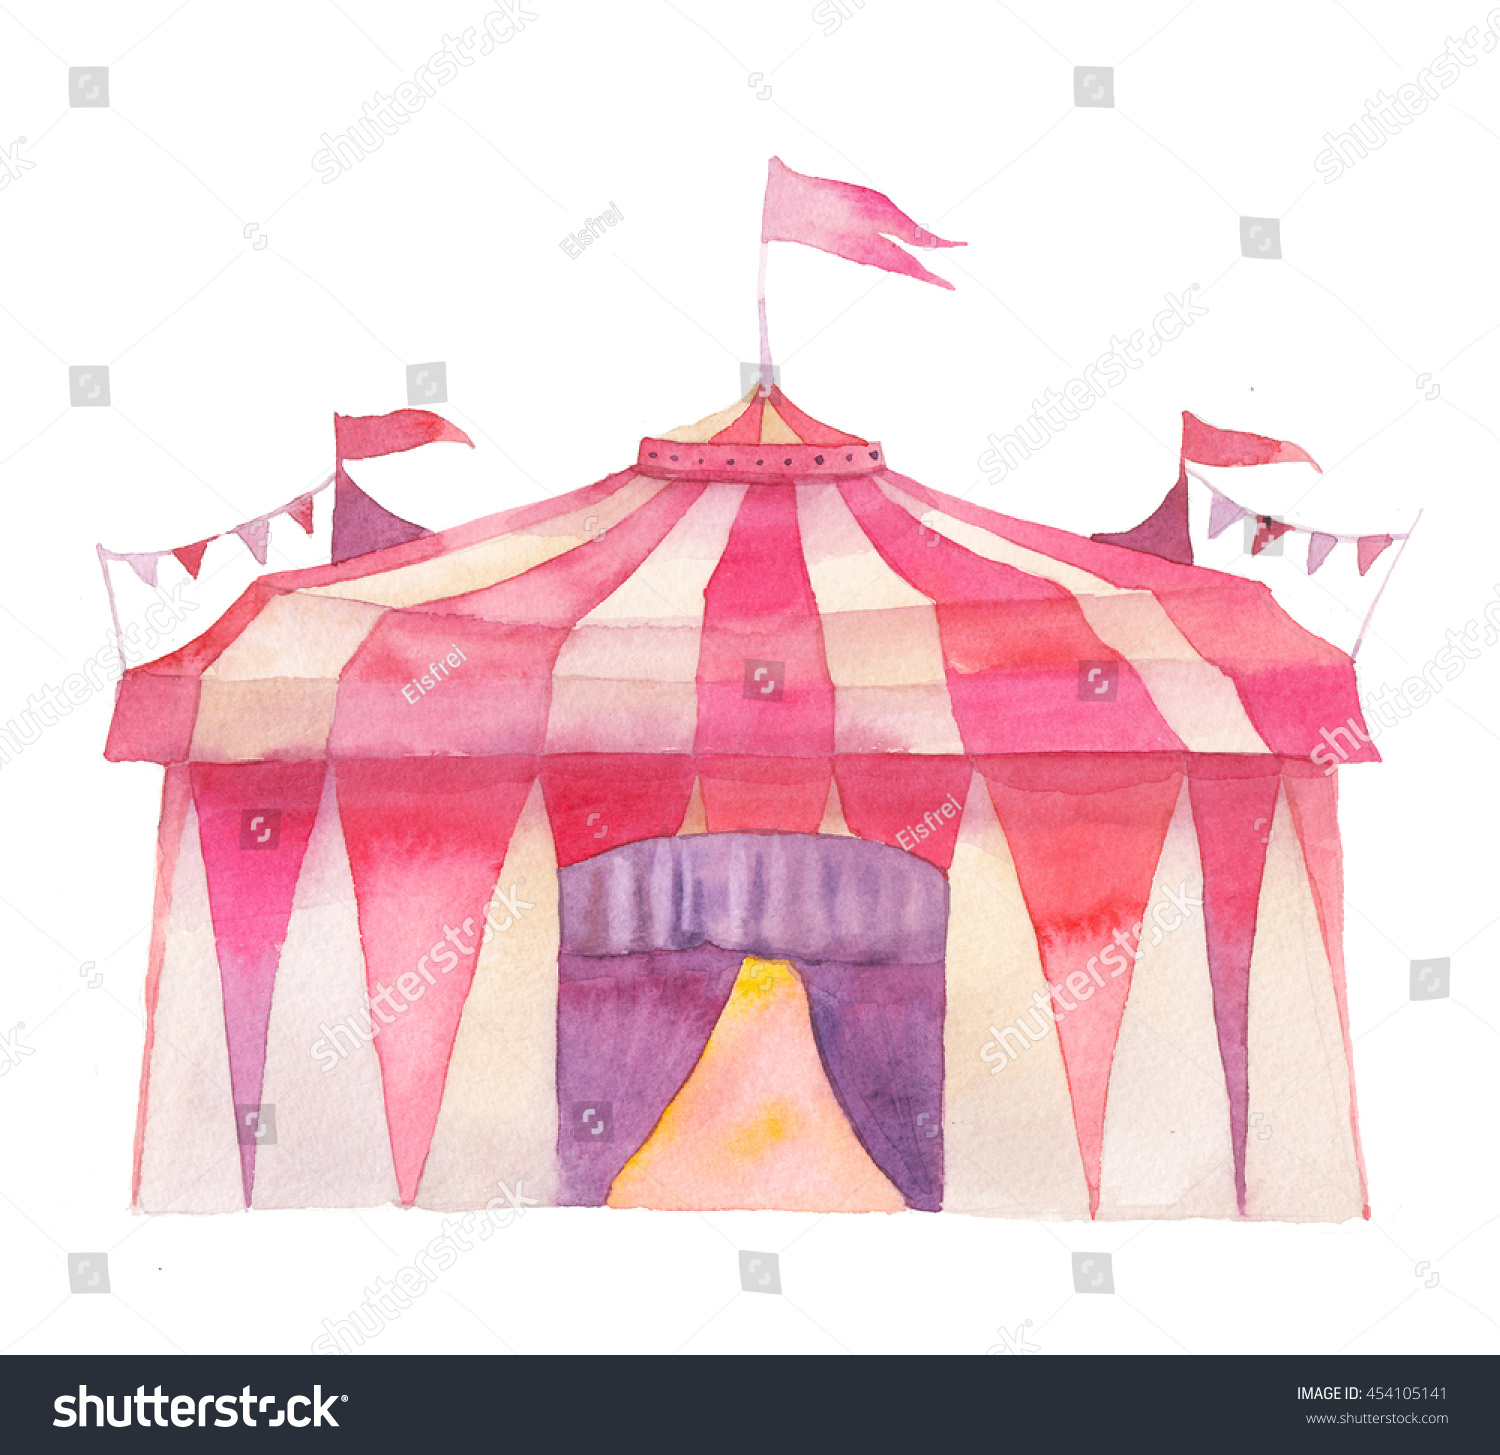 Watercolor circus tent with flags garlands isolated on white background. Hand drawn fair illustration  sc 1 st  Shutterstock & Watercolor Circus Tent Flags Garlands Isolated Stock Illustration ...